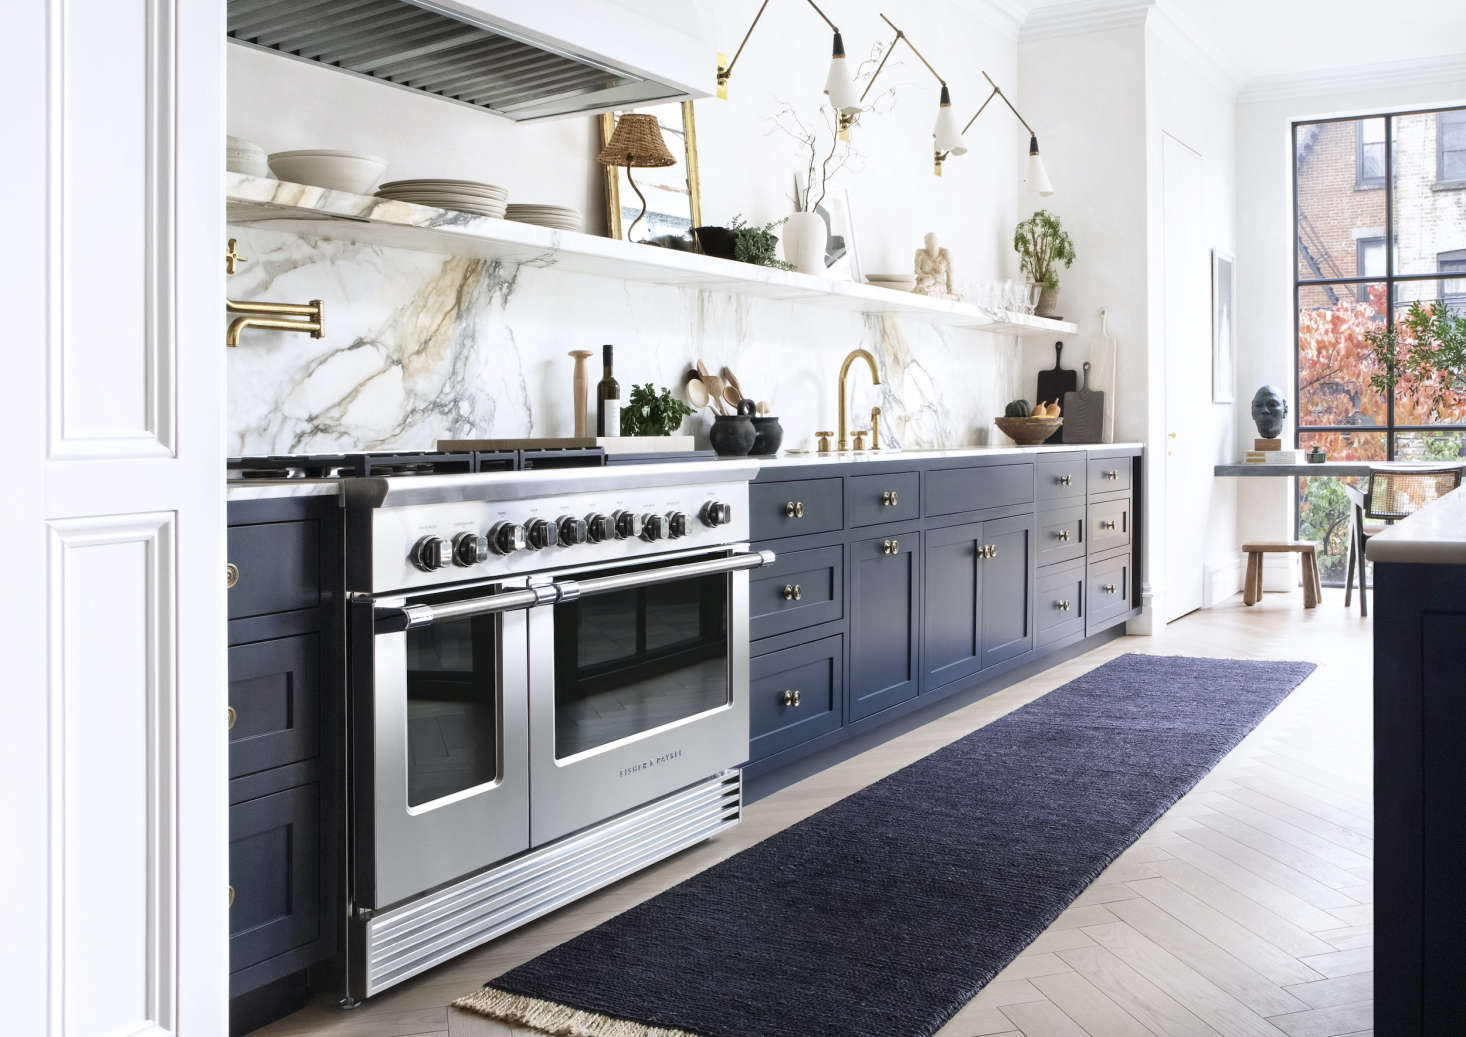 """The 48"""" Professional Range in situ. See all of the 48"""" models (including eight burners, five or six burners with inset griddle, or six burners with grill) here. Photograph by Sarah Elliott."""